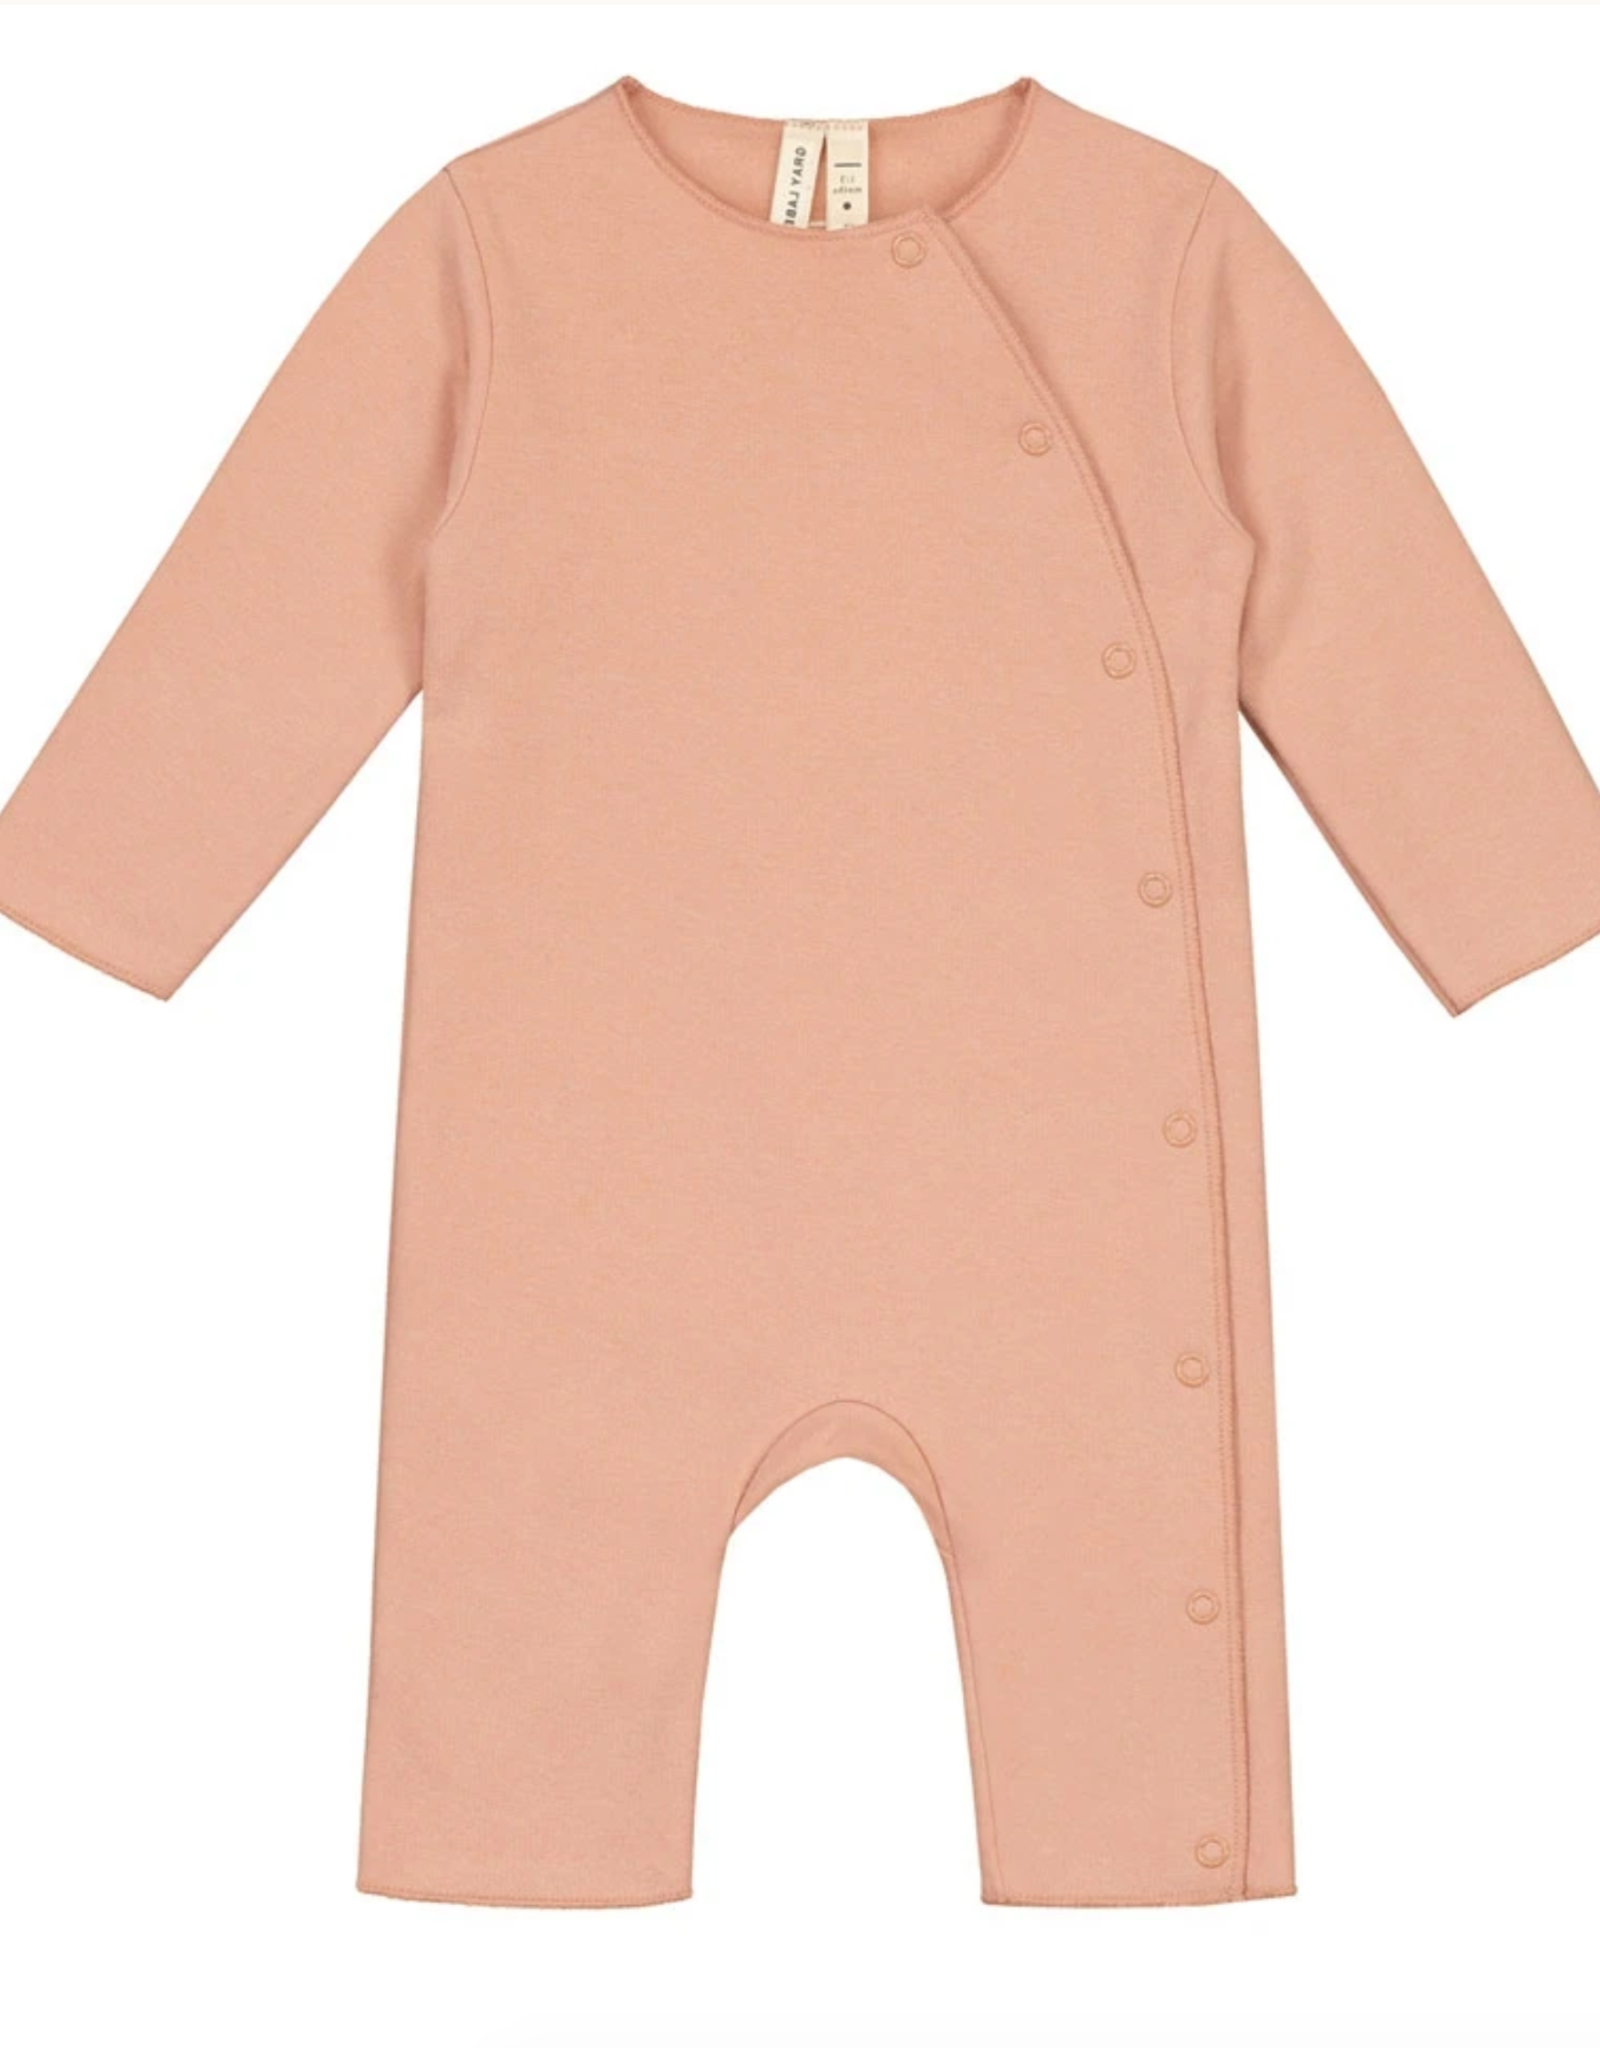 Gray Label Baby Suit with snaps